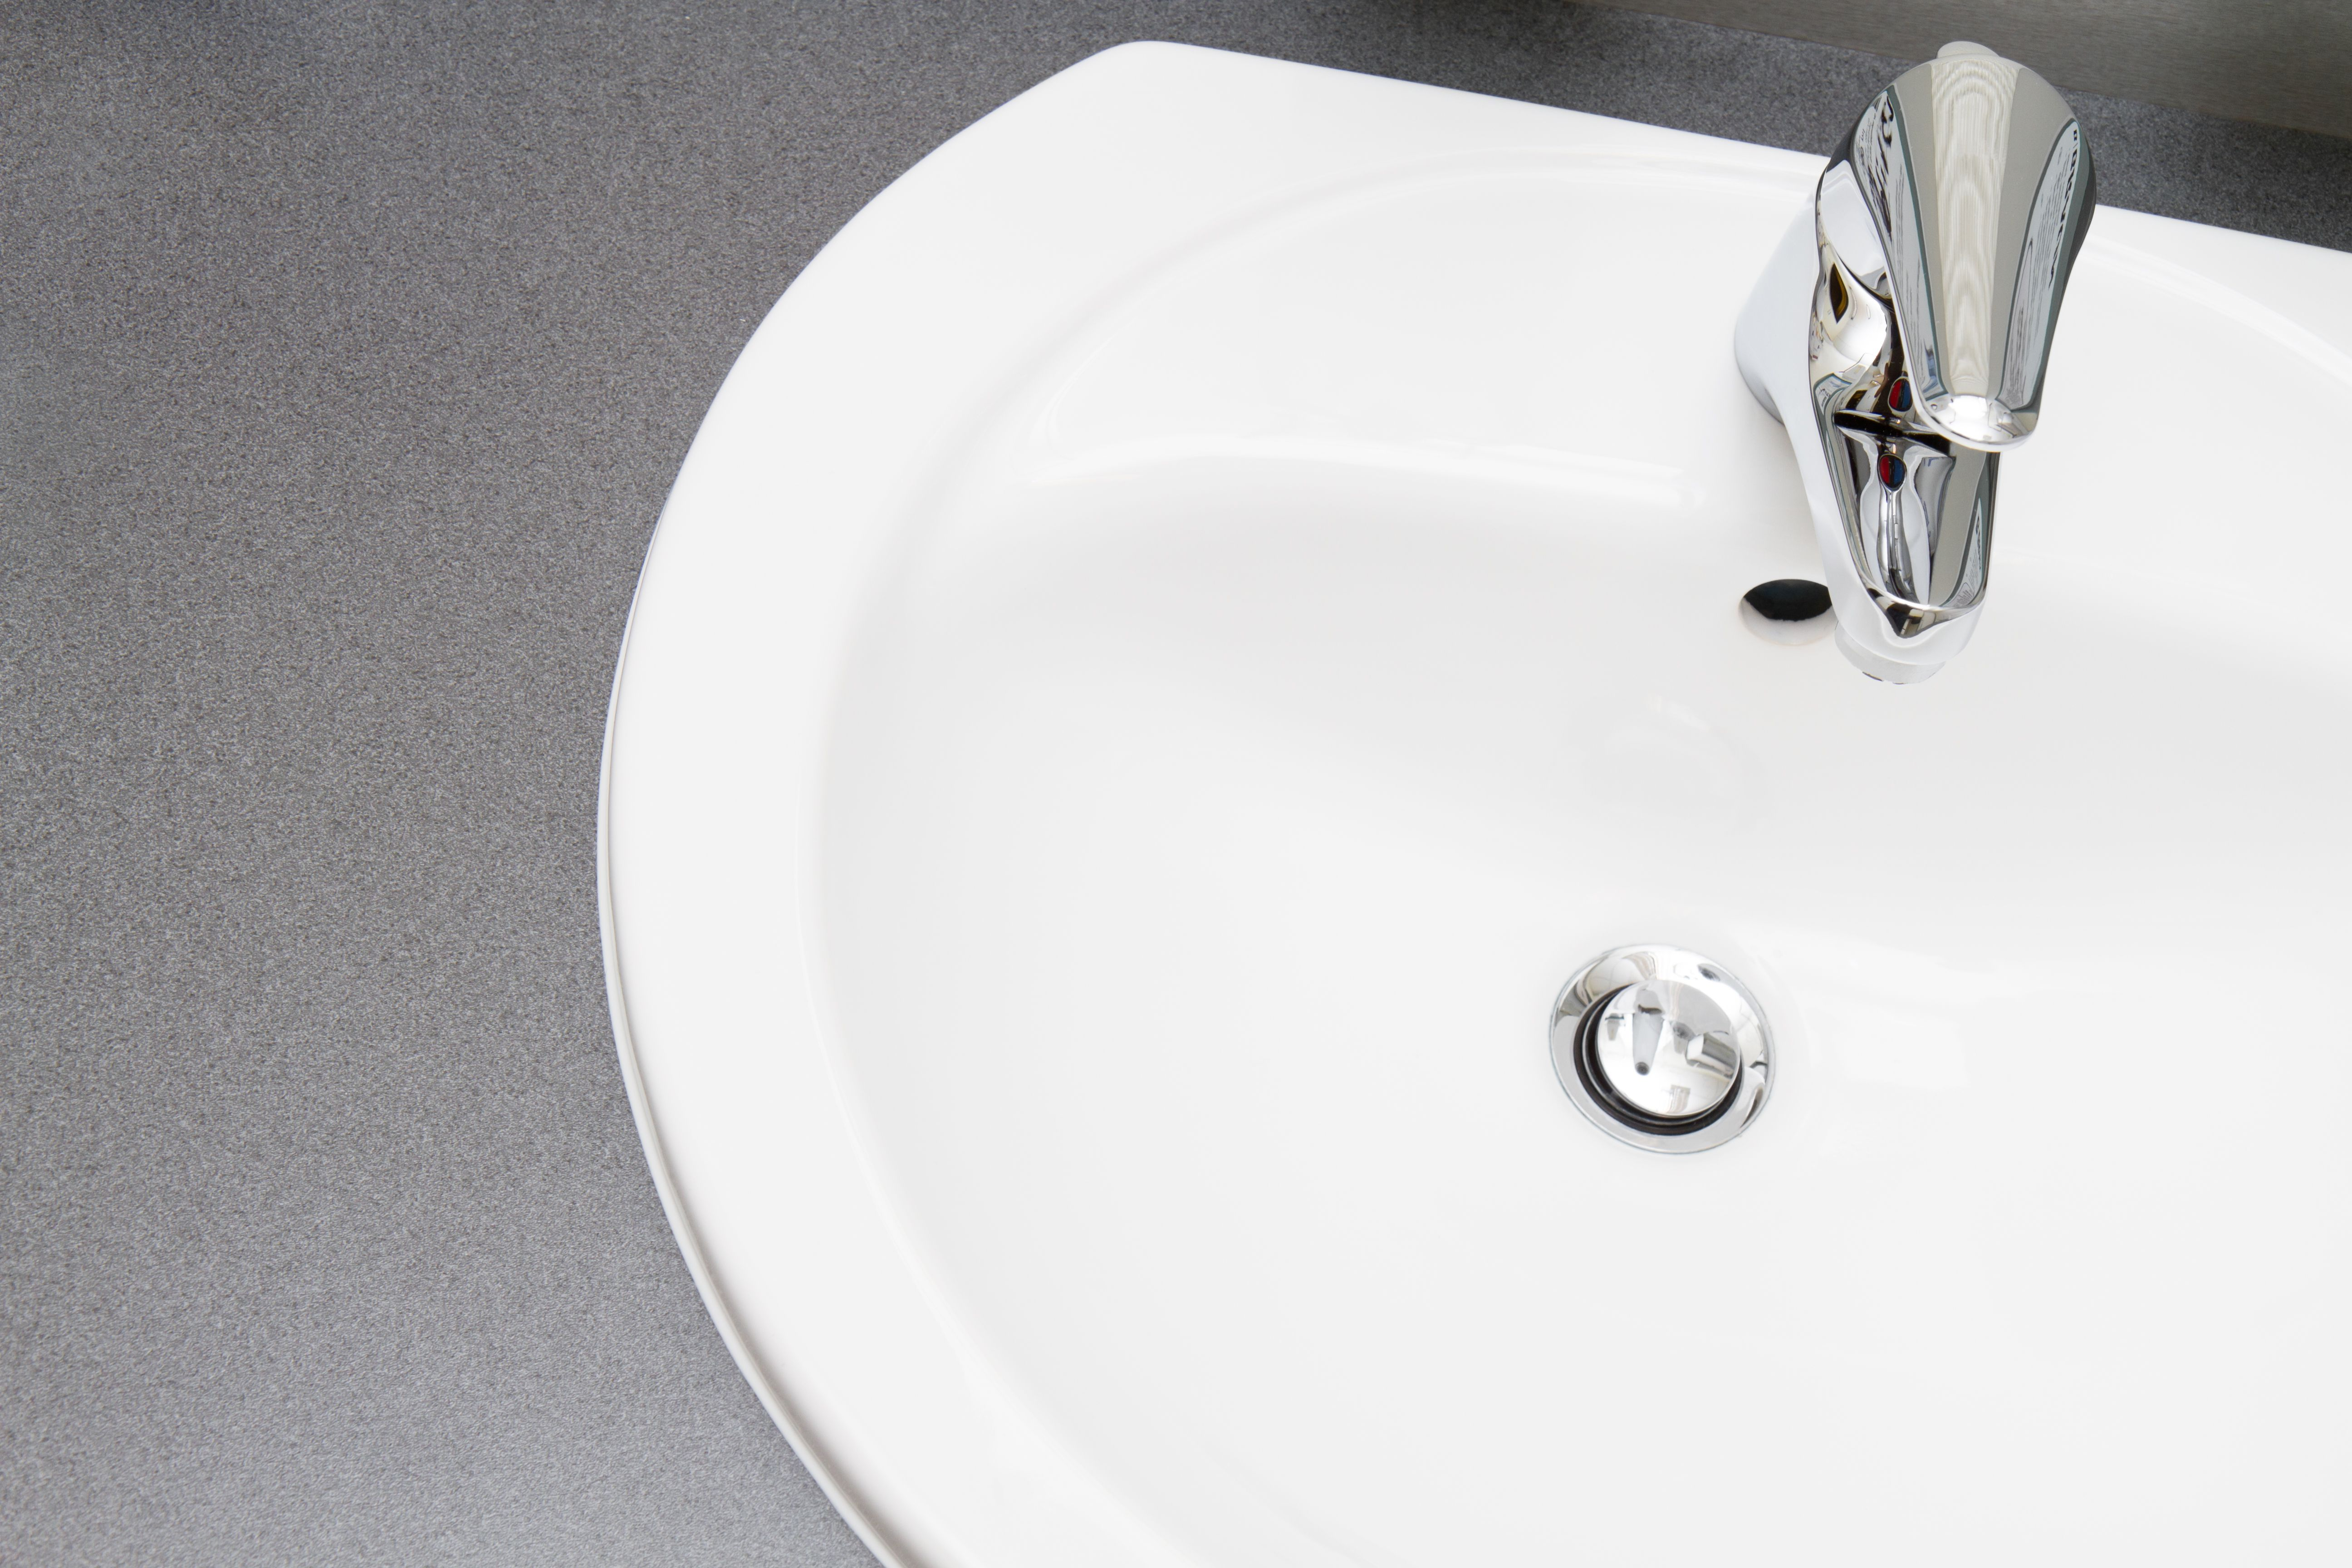 How to Install a Pop Up Drain in Your Bathroom  Plumbing Repair Basics. Bathroom Sink Plumbing